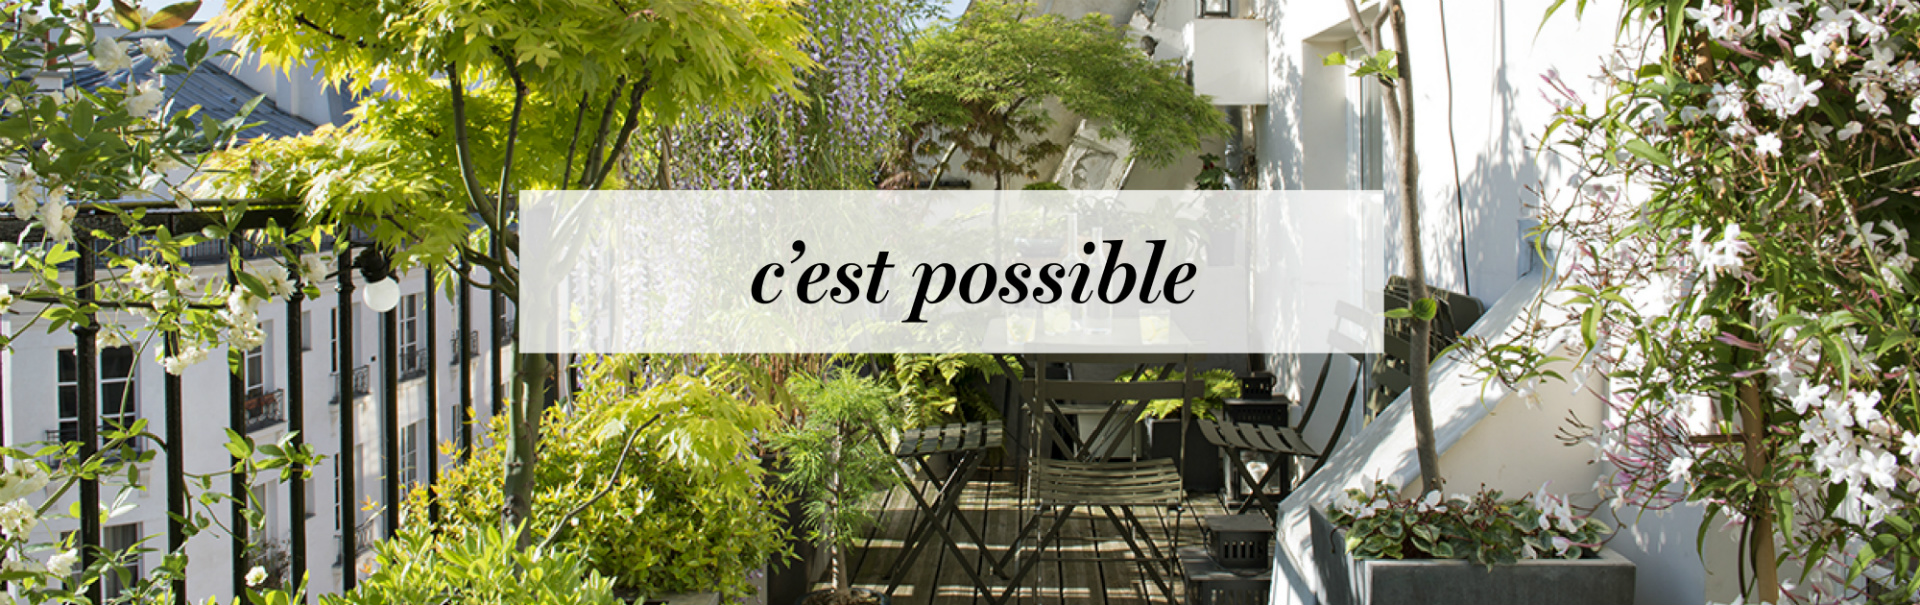 cestpossible1